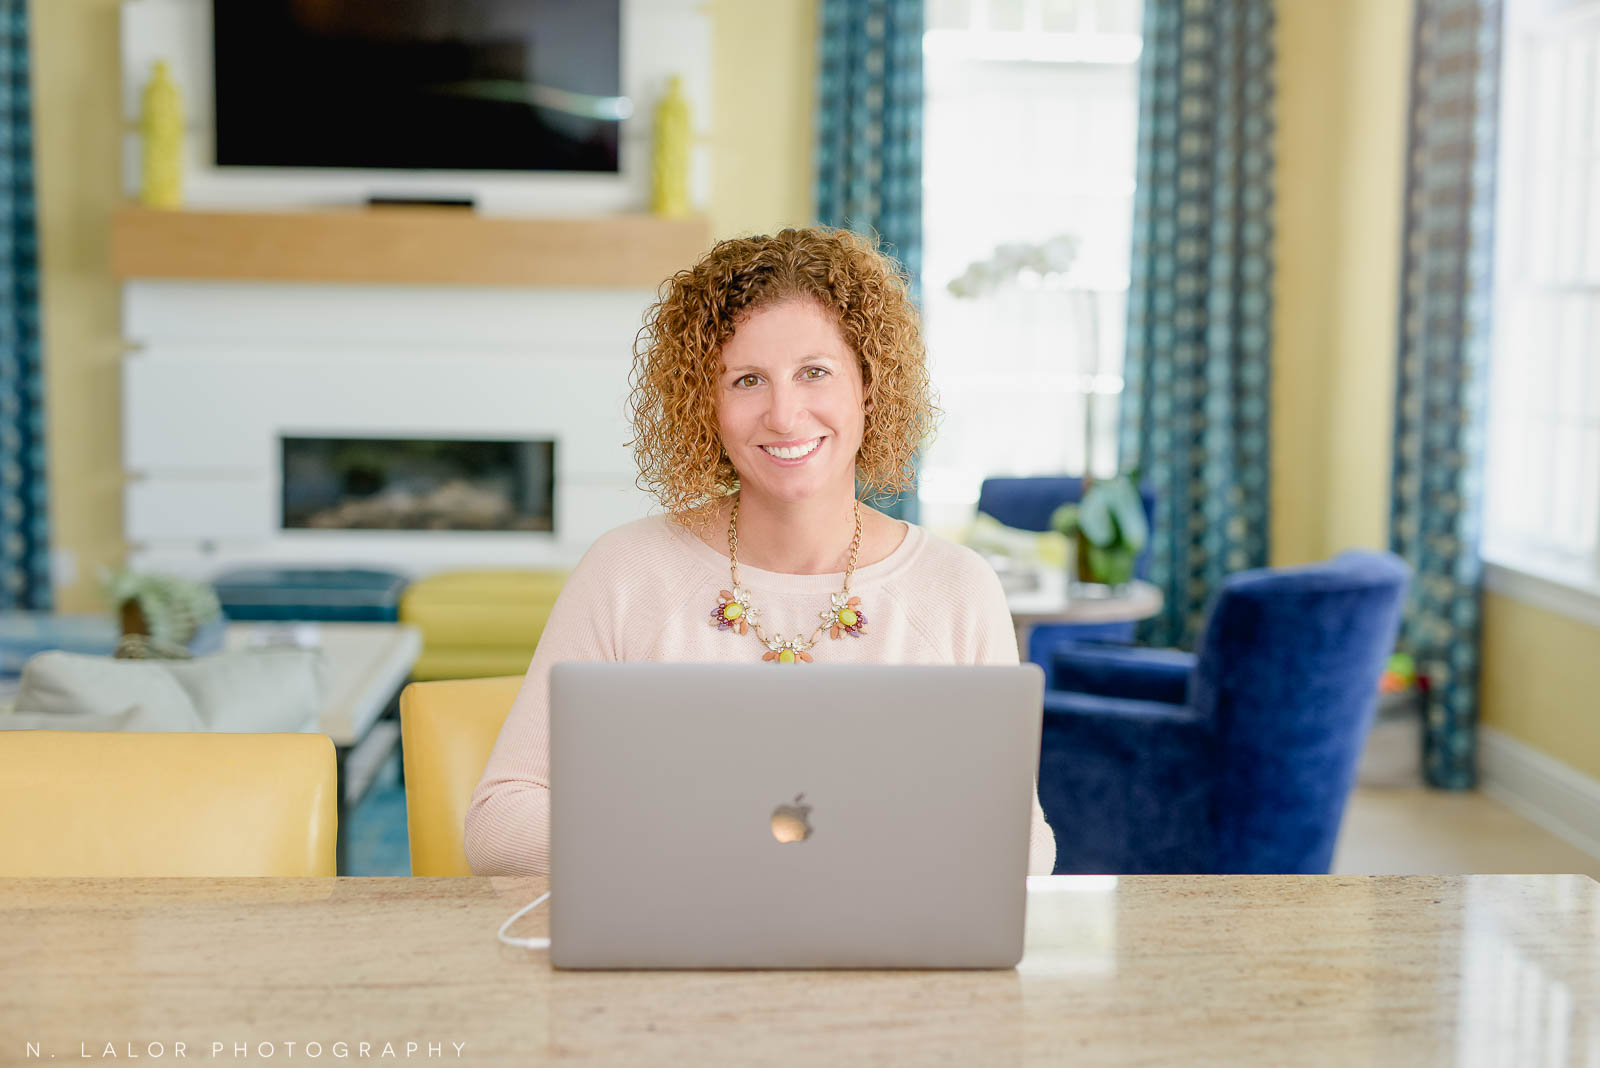 Paige, owner of Blue Pencil Company in Greenwich Connecticut, helps people live their best lives through better organization and memory keeping.